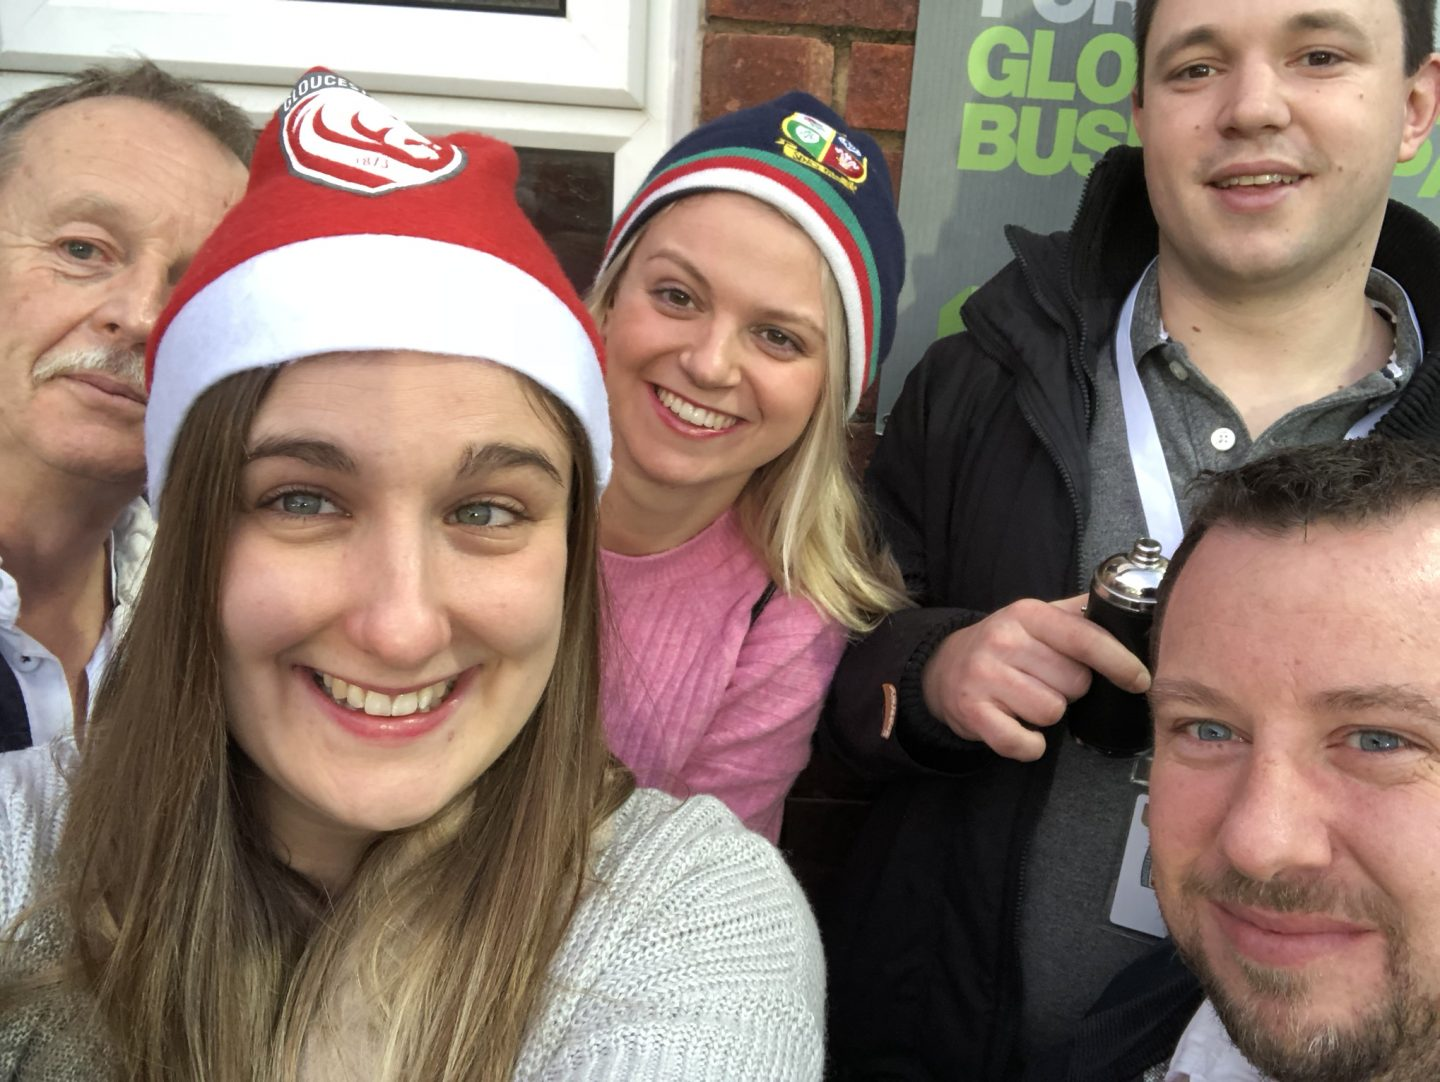 Home for the holidays: group at Gloucester Rugby